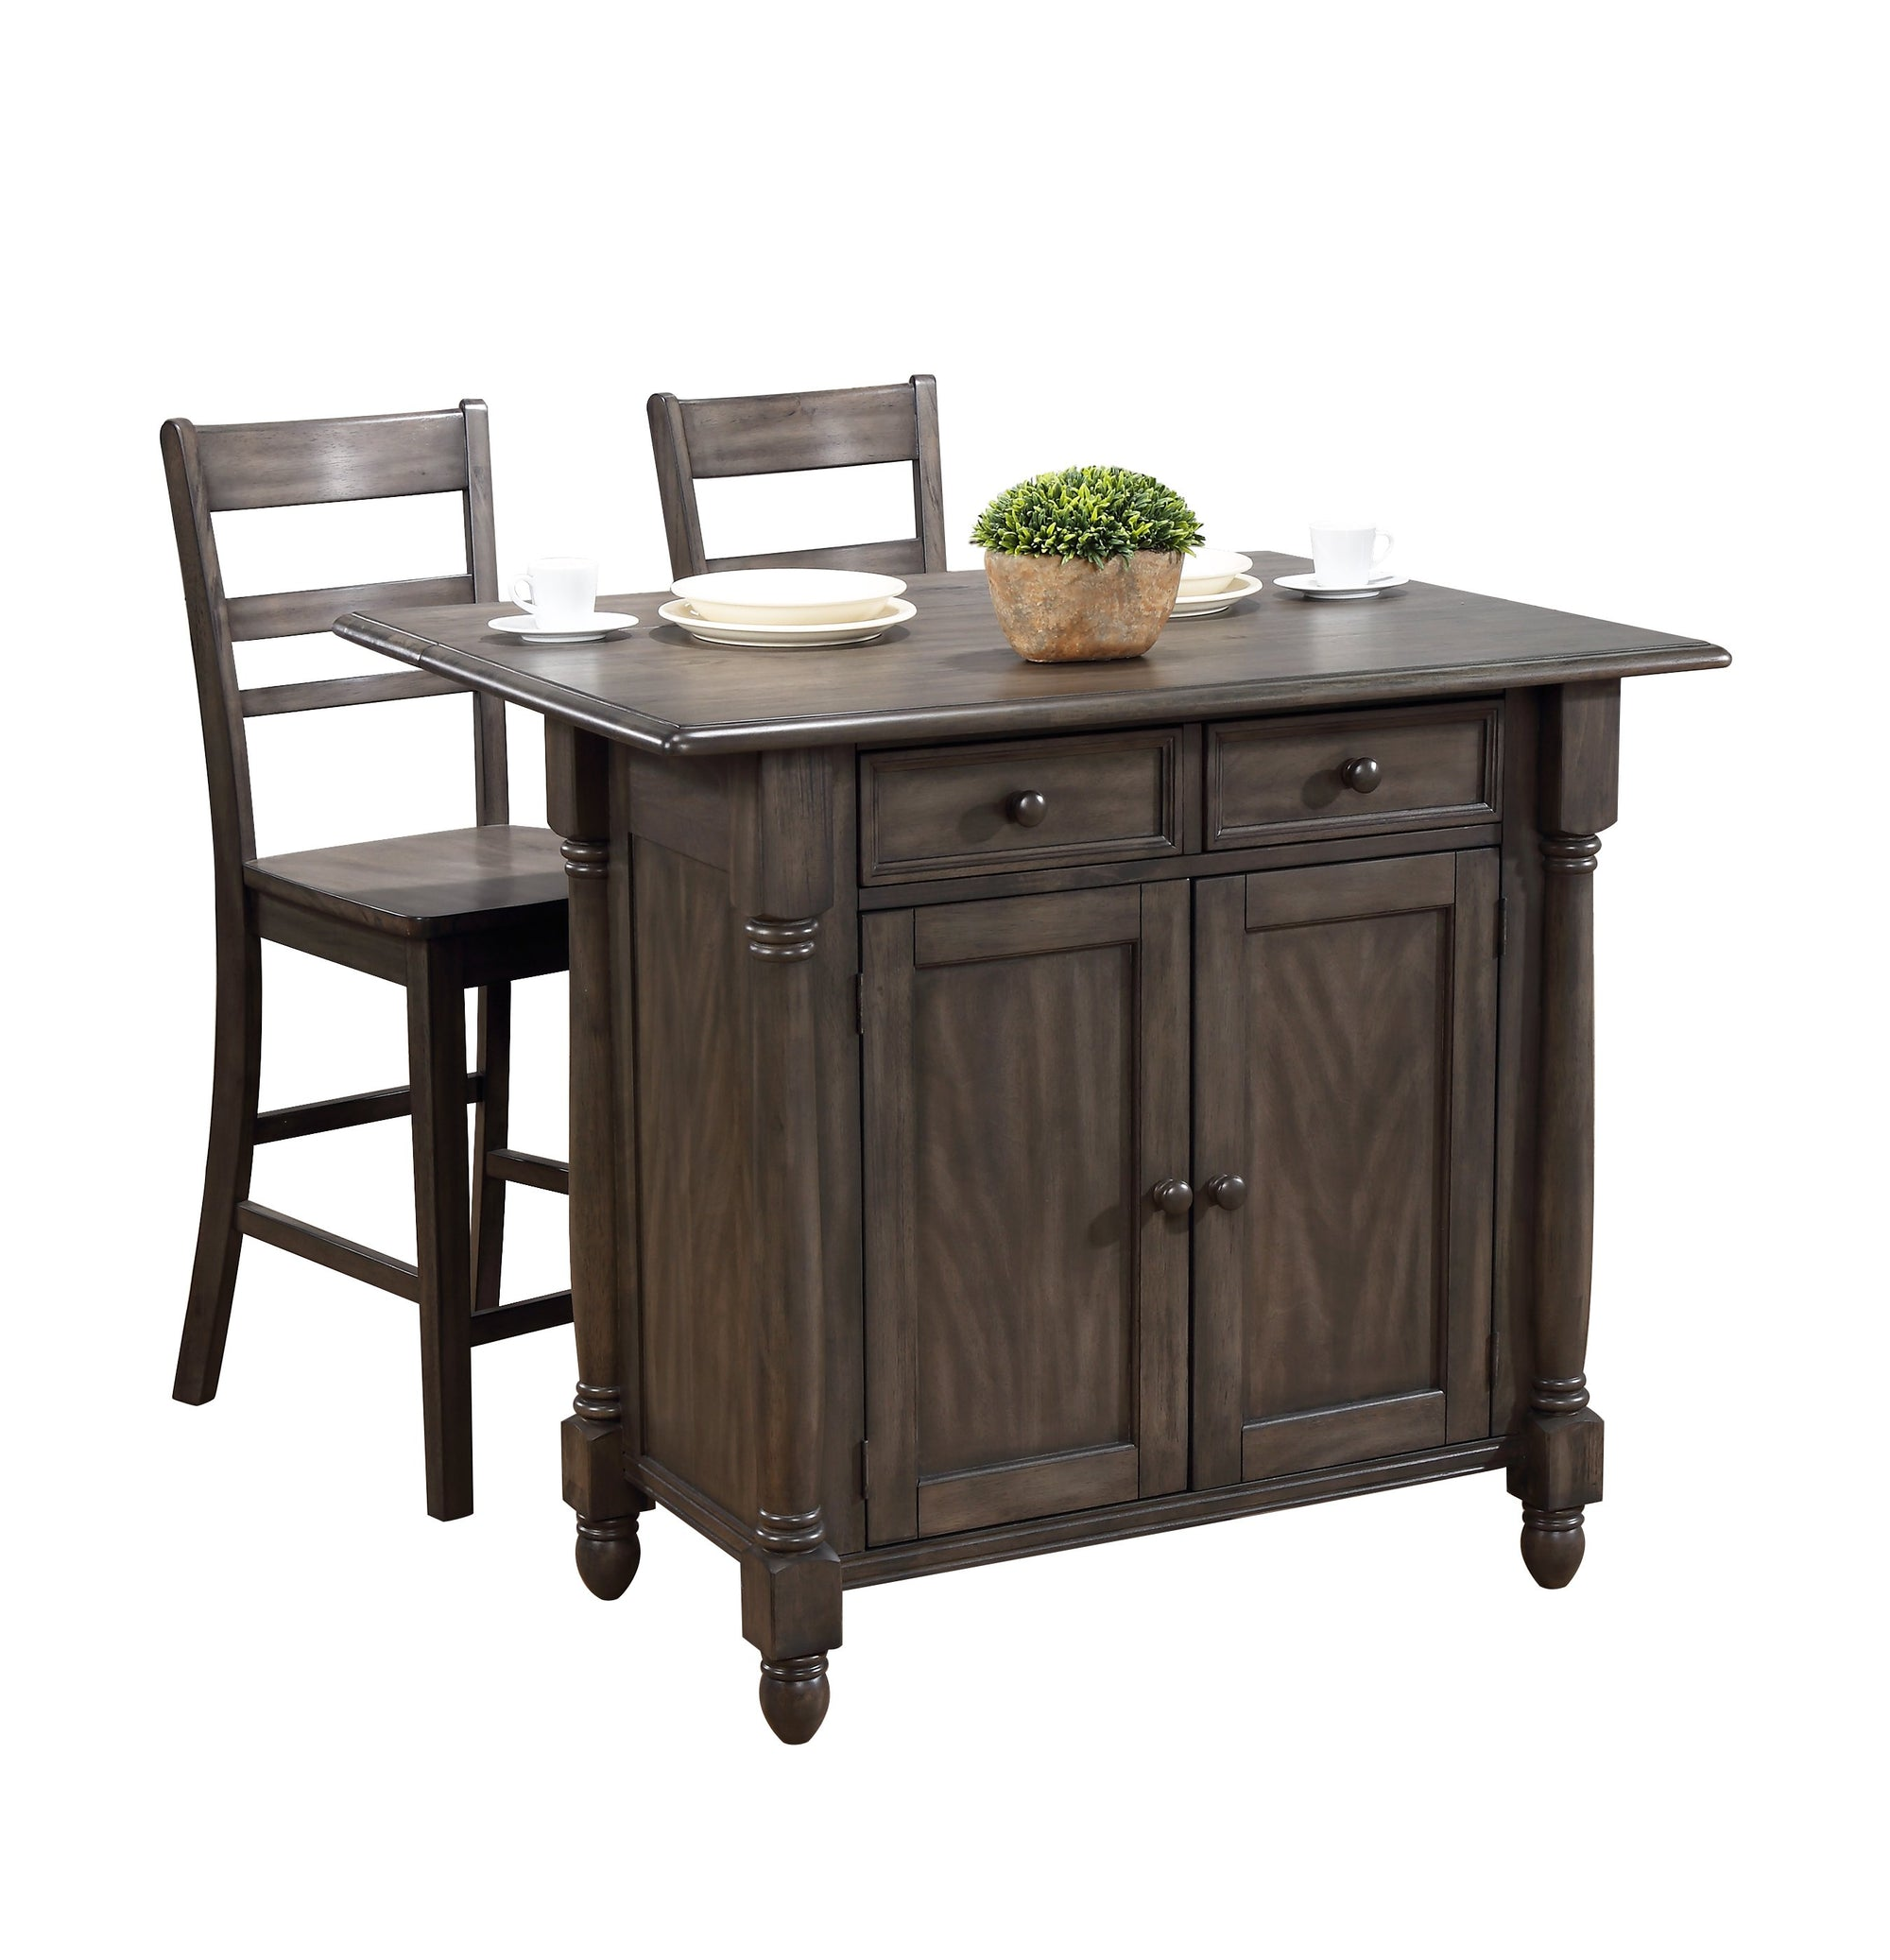 Sunset Trading Shades of Gray Drop Leaf Kitchen Island Set with 2 Stools